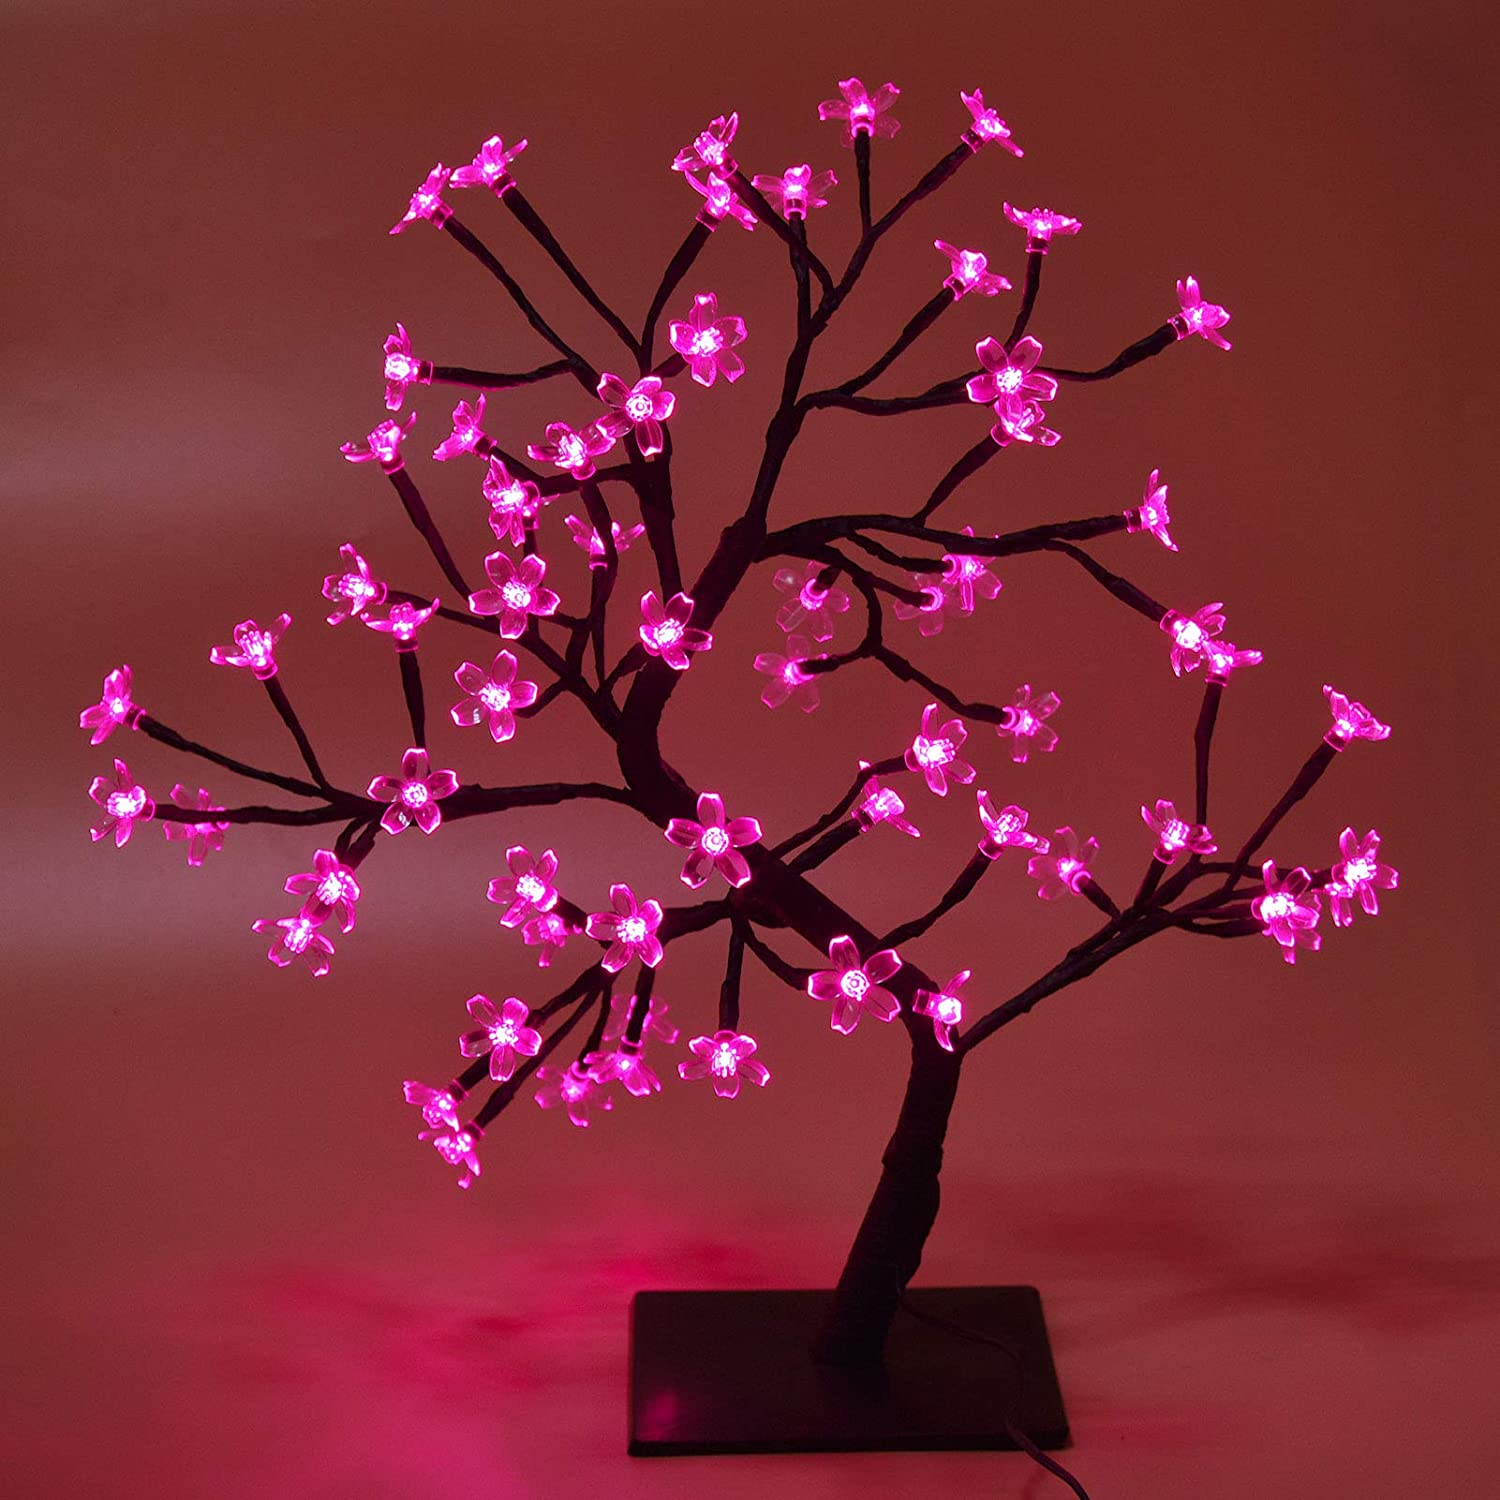 18 Inch Cherry Blossom Artificial Tree with 64-LED Lights, 24V UL Certified Plug-in Adapter (Included), Japanese Bedroom Table Kawaii Decor, House Wall Decorations for Living Room (Pink)